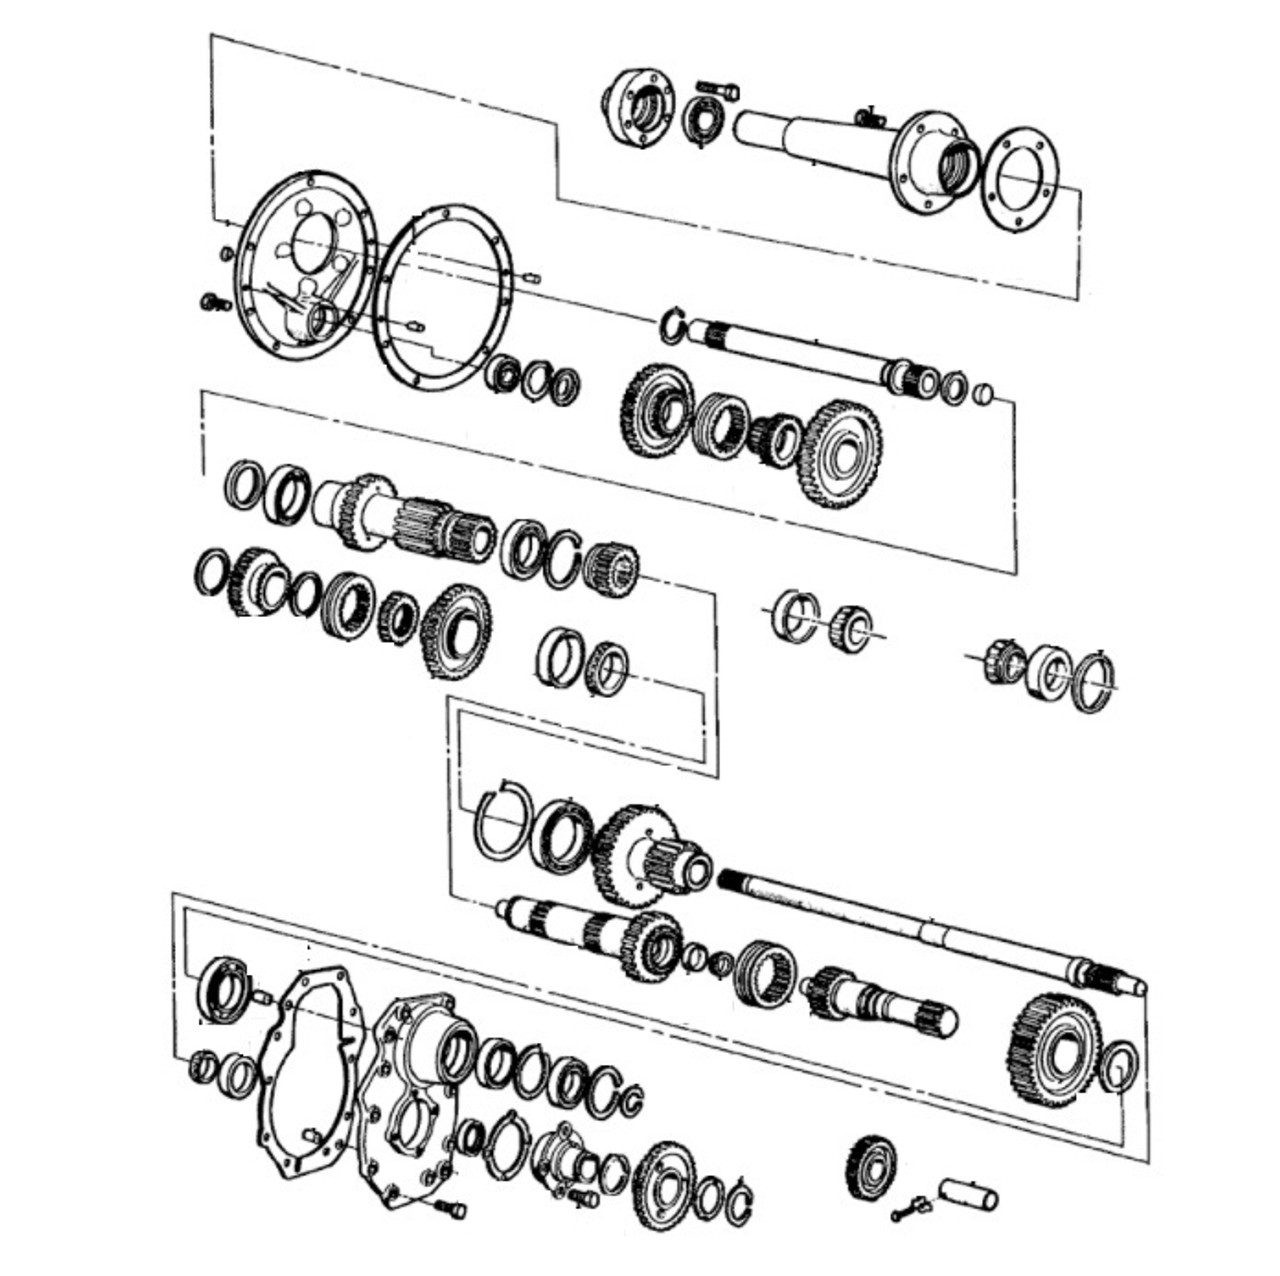 Ford Tractor Transmission Parts- Gears, Shafts, Shift Top